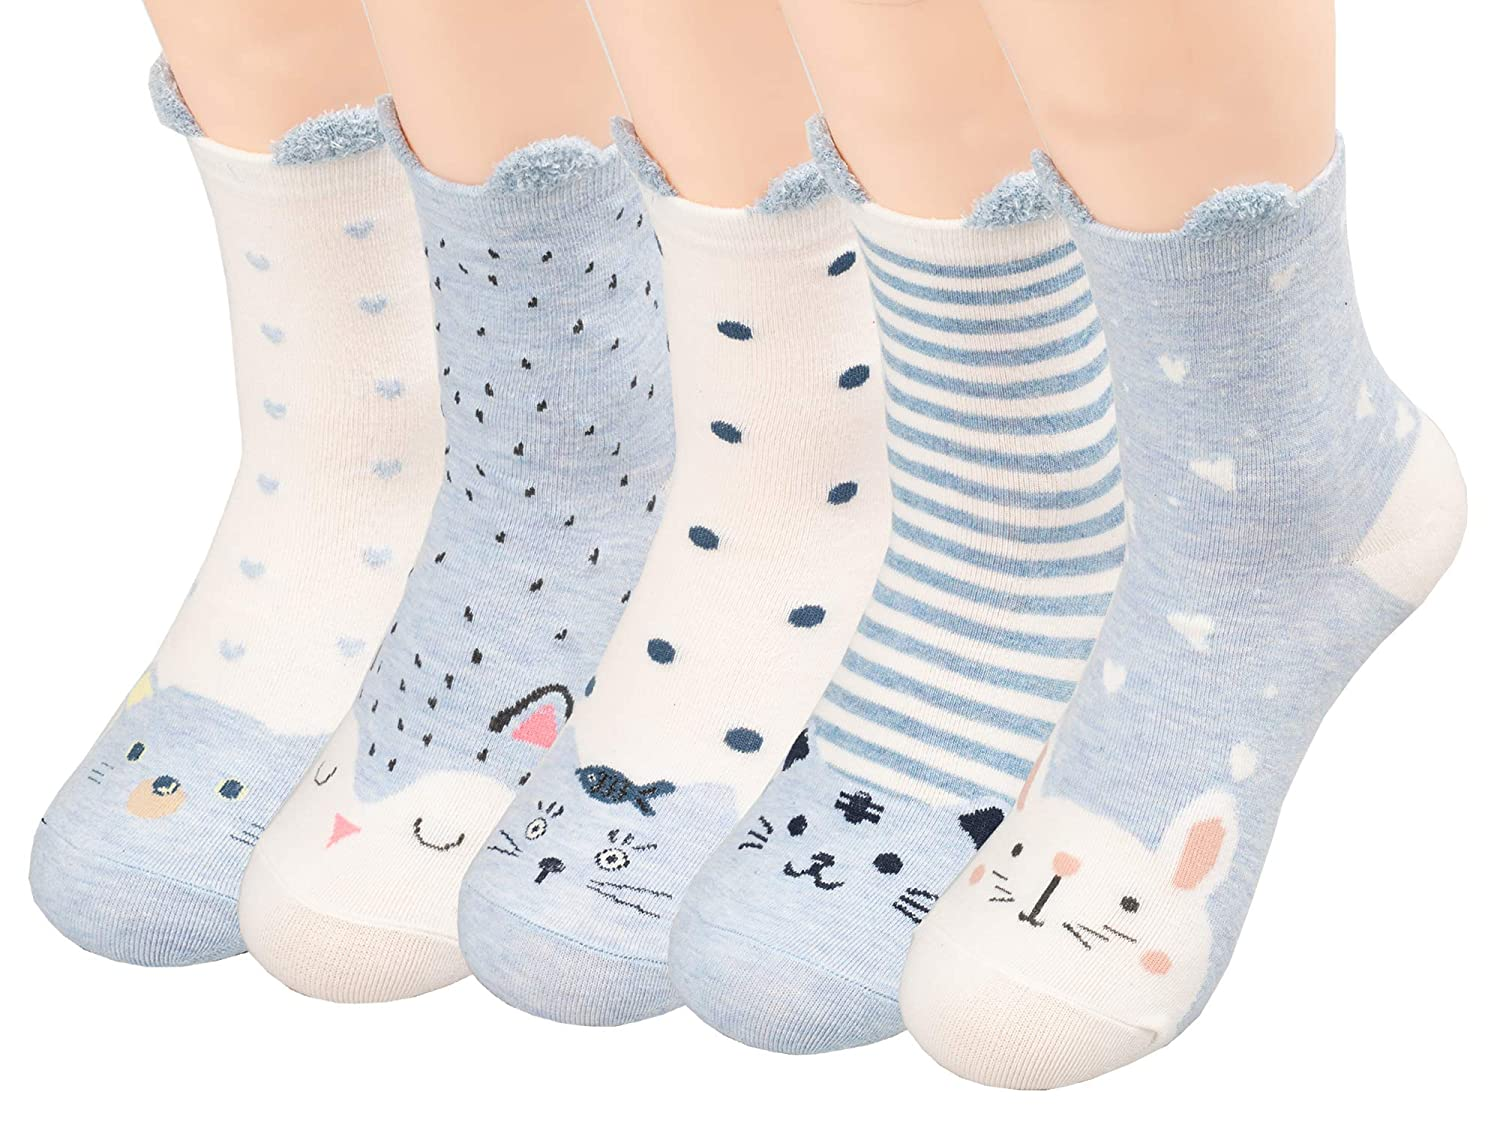 TooPhoto Womens Cotton Cute Funny Soft Colorfull Novelty Animal Casual Ear Crew Socks Gift 5pcs